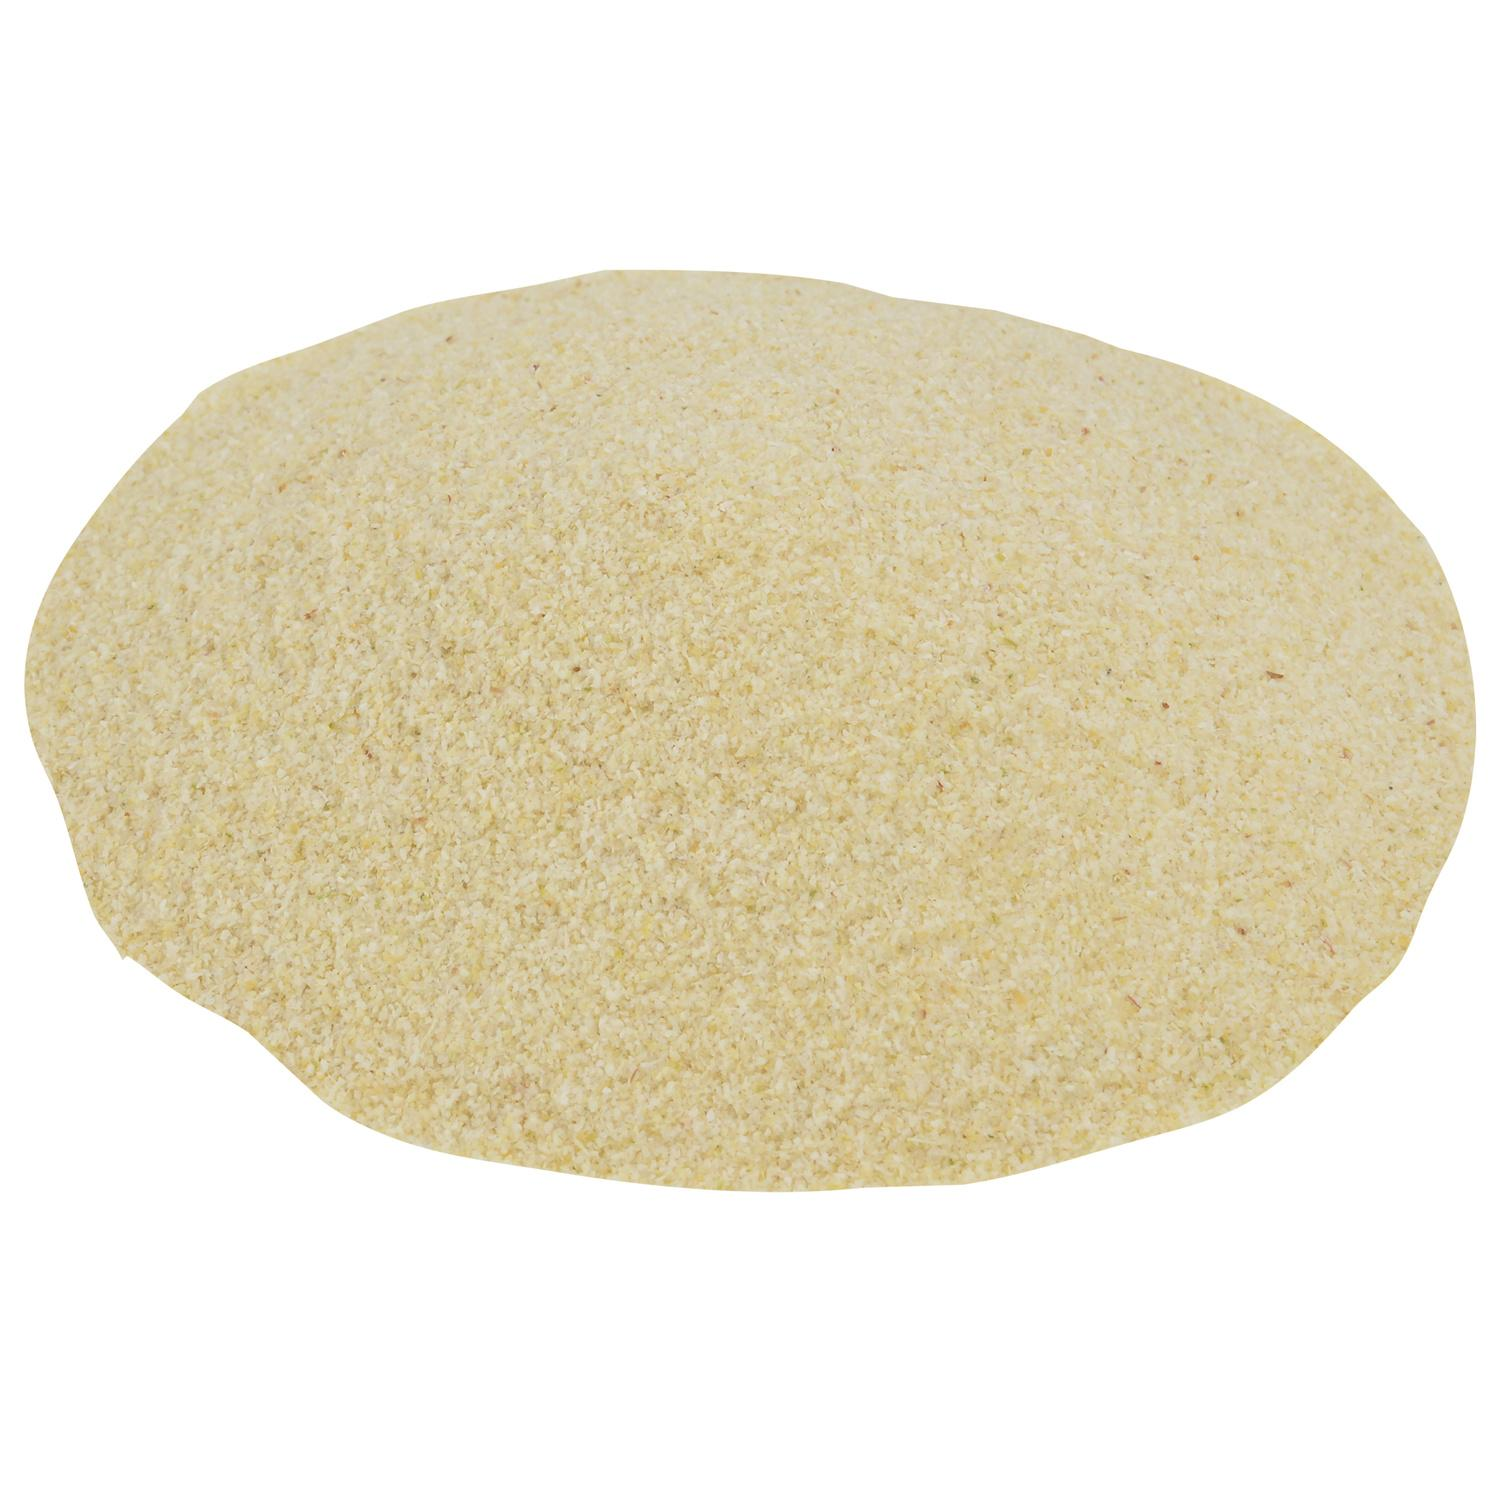 image of Spice Onion Granulated